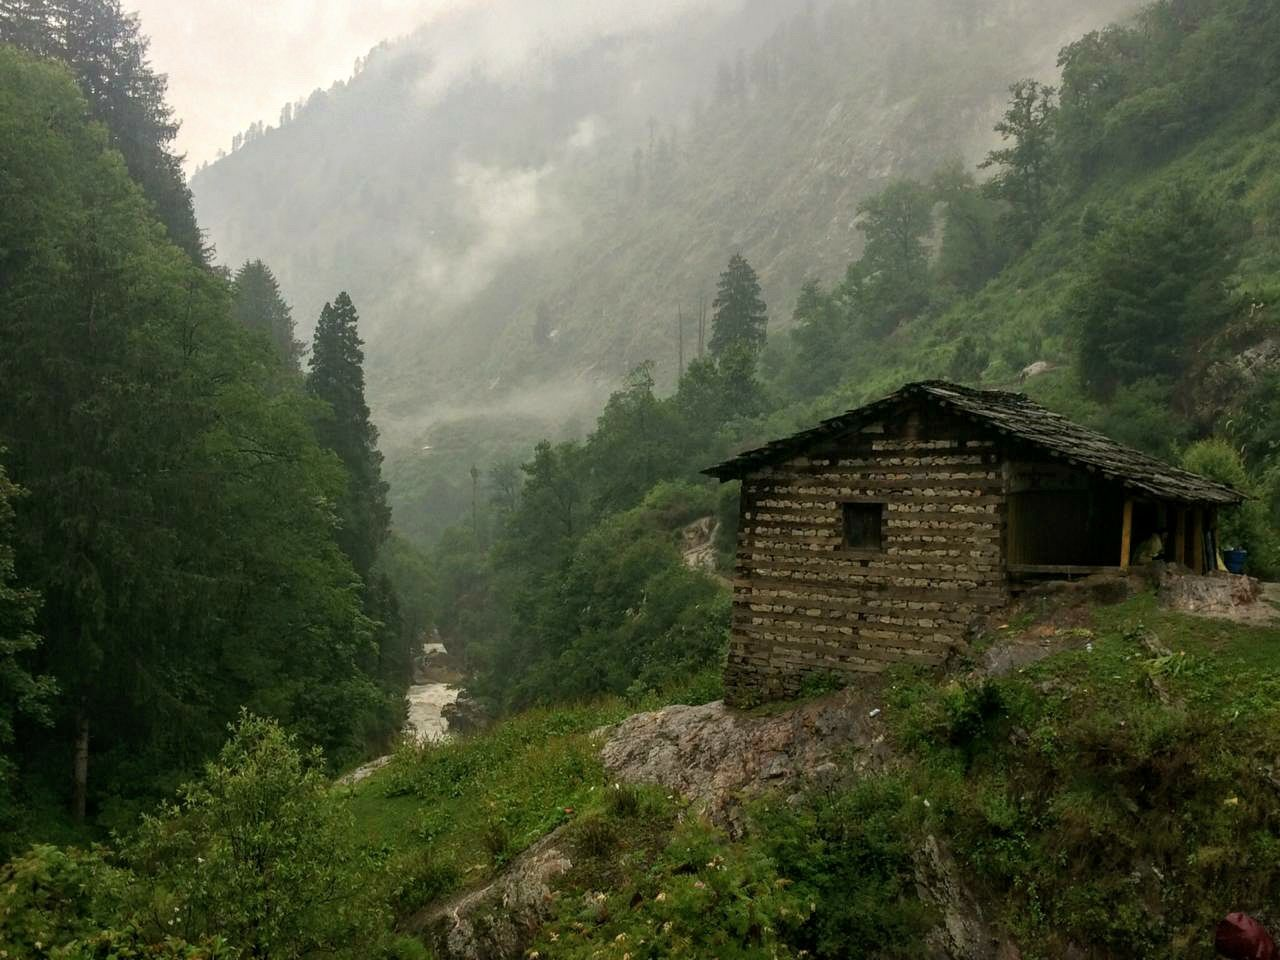 Photo of Kheerganga Trek By Saurabh Yadav